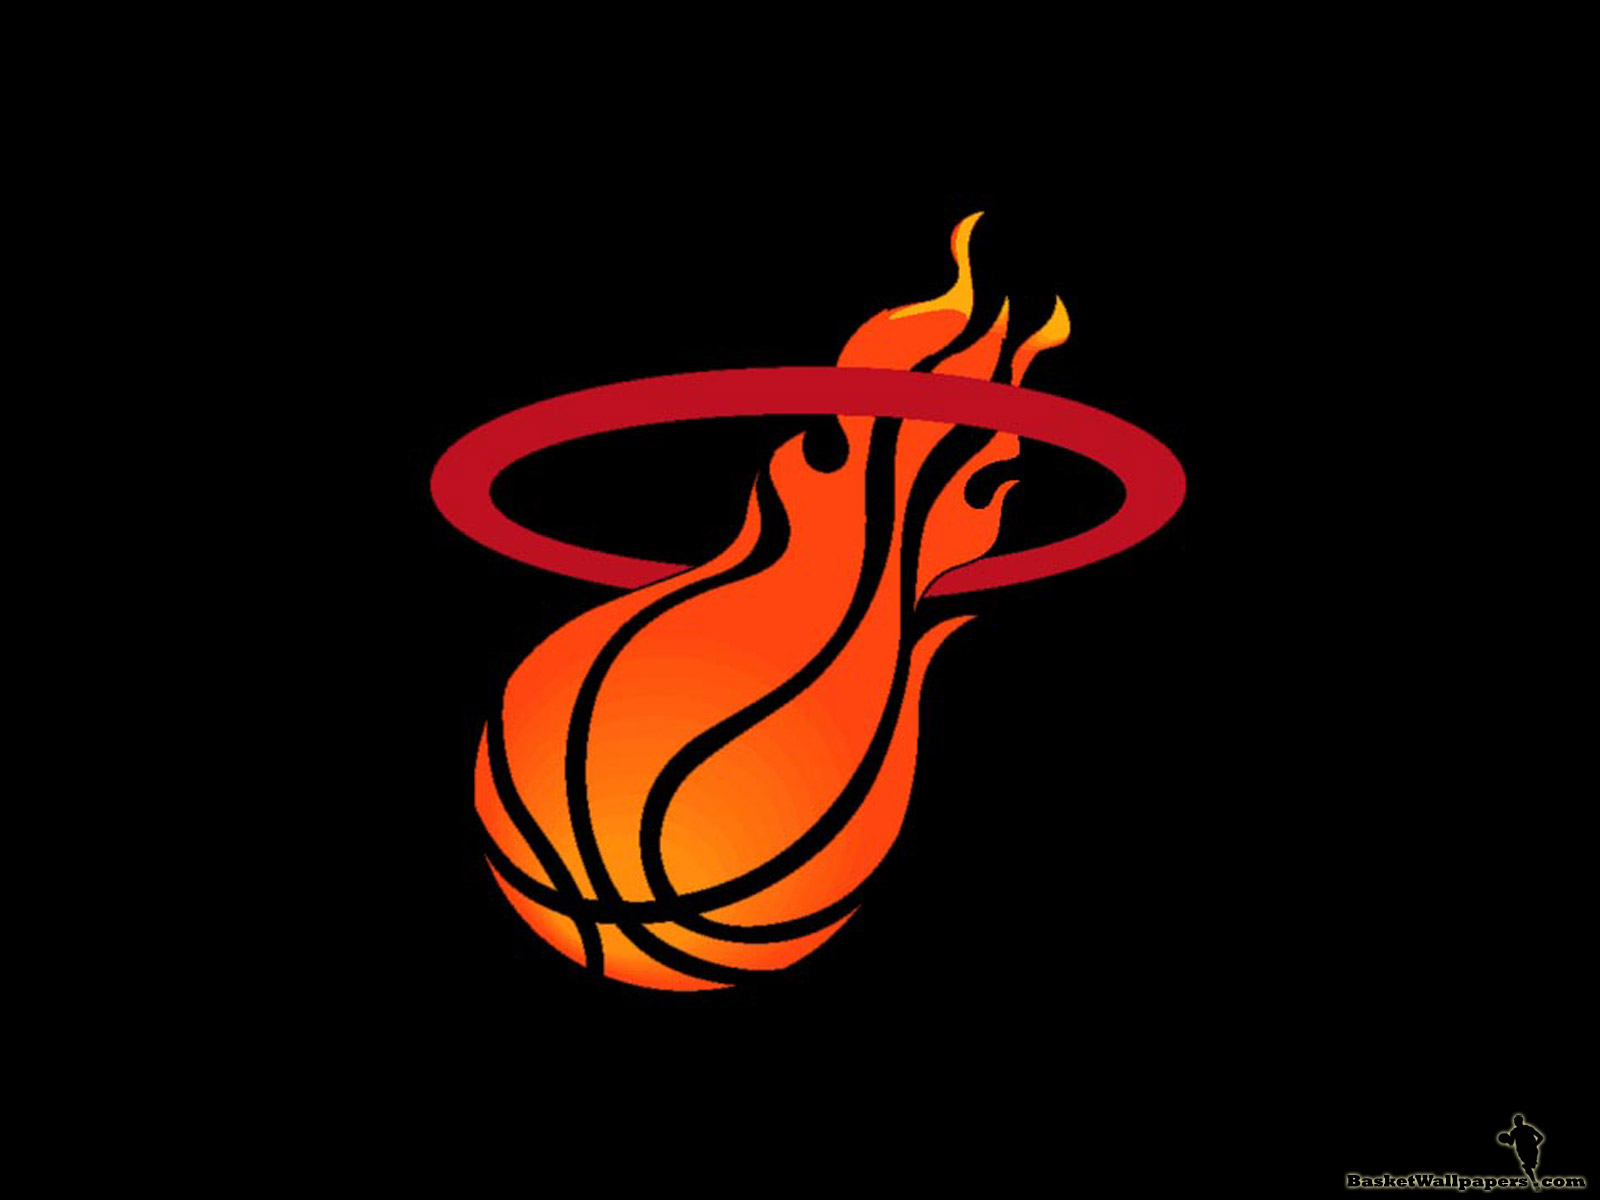 Miami Heat - Basketball Wallpapers picture wallpaper image